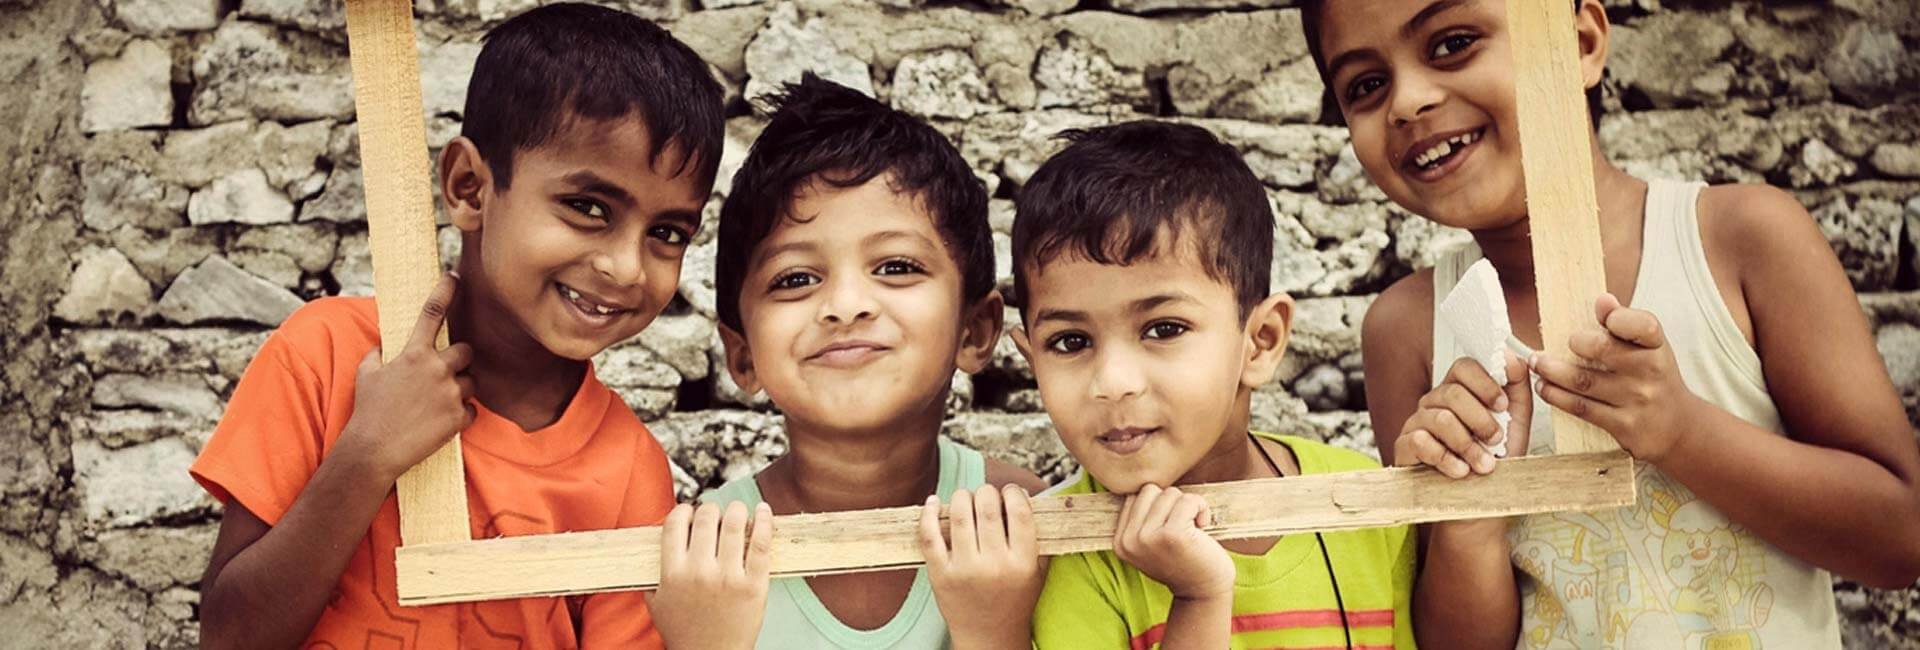 How To Work For An NGO in India: 27 Things You Should Know